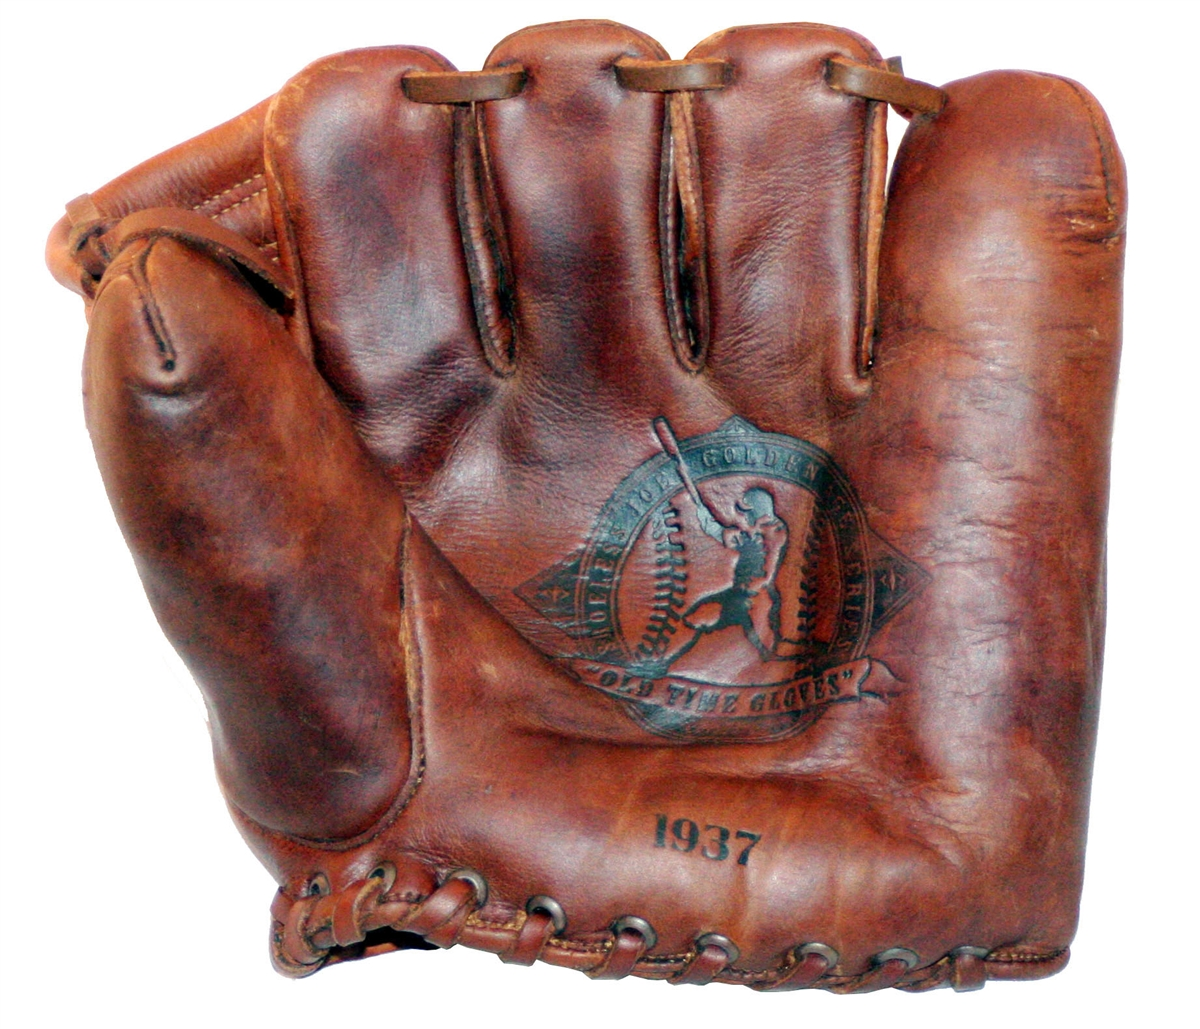 A baseball glove or mitt is a large leather glove worn by baseball players of the defending team, which assists players in catching and fielding balls hit by a batter or thrown by a teammate.